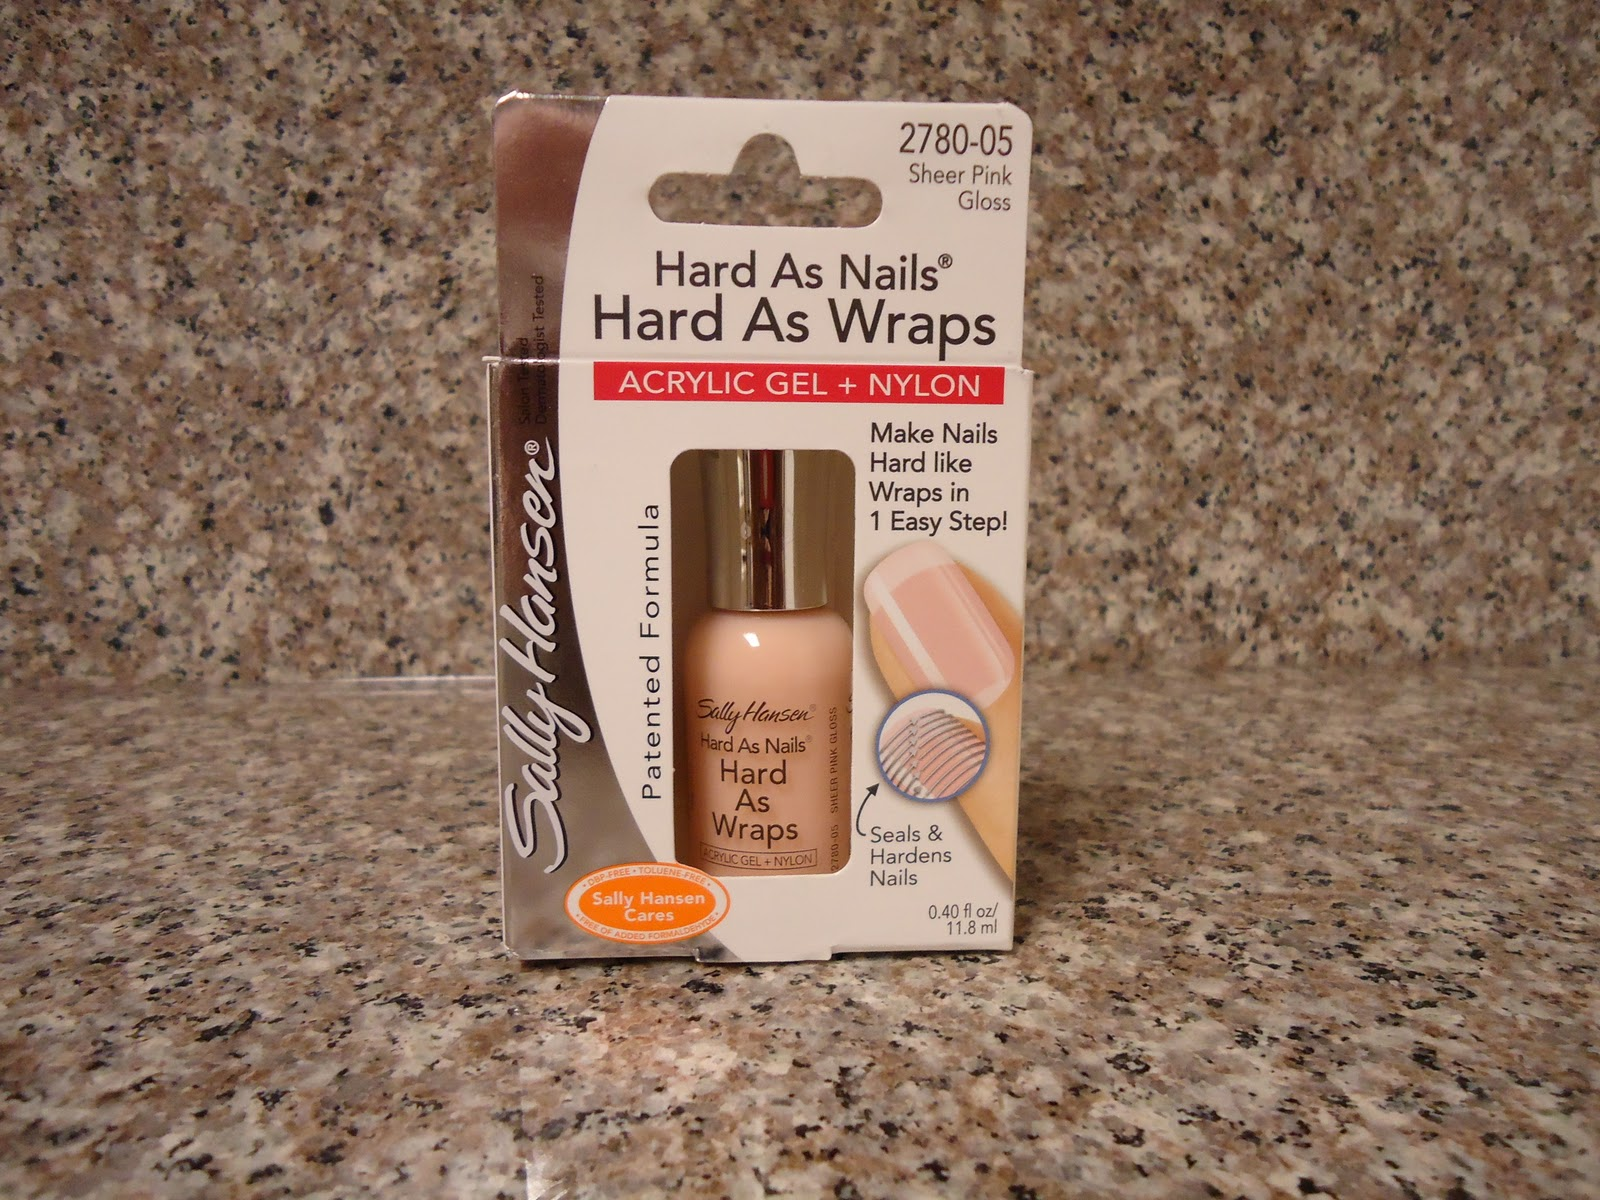 BlkBeauty4Life: Sally Hansen Hard As Nails Hard As Wraps Acrylic